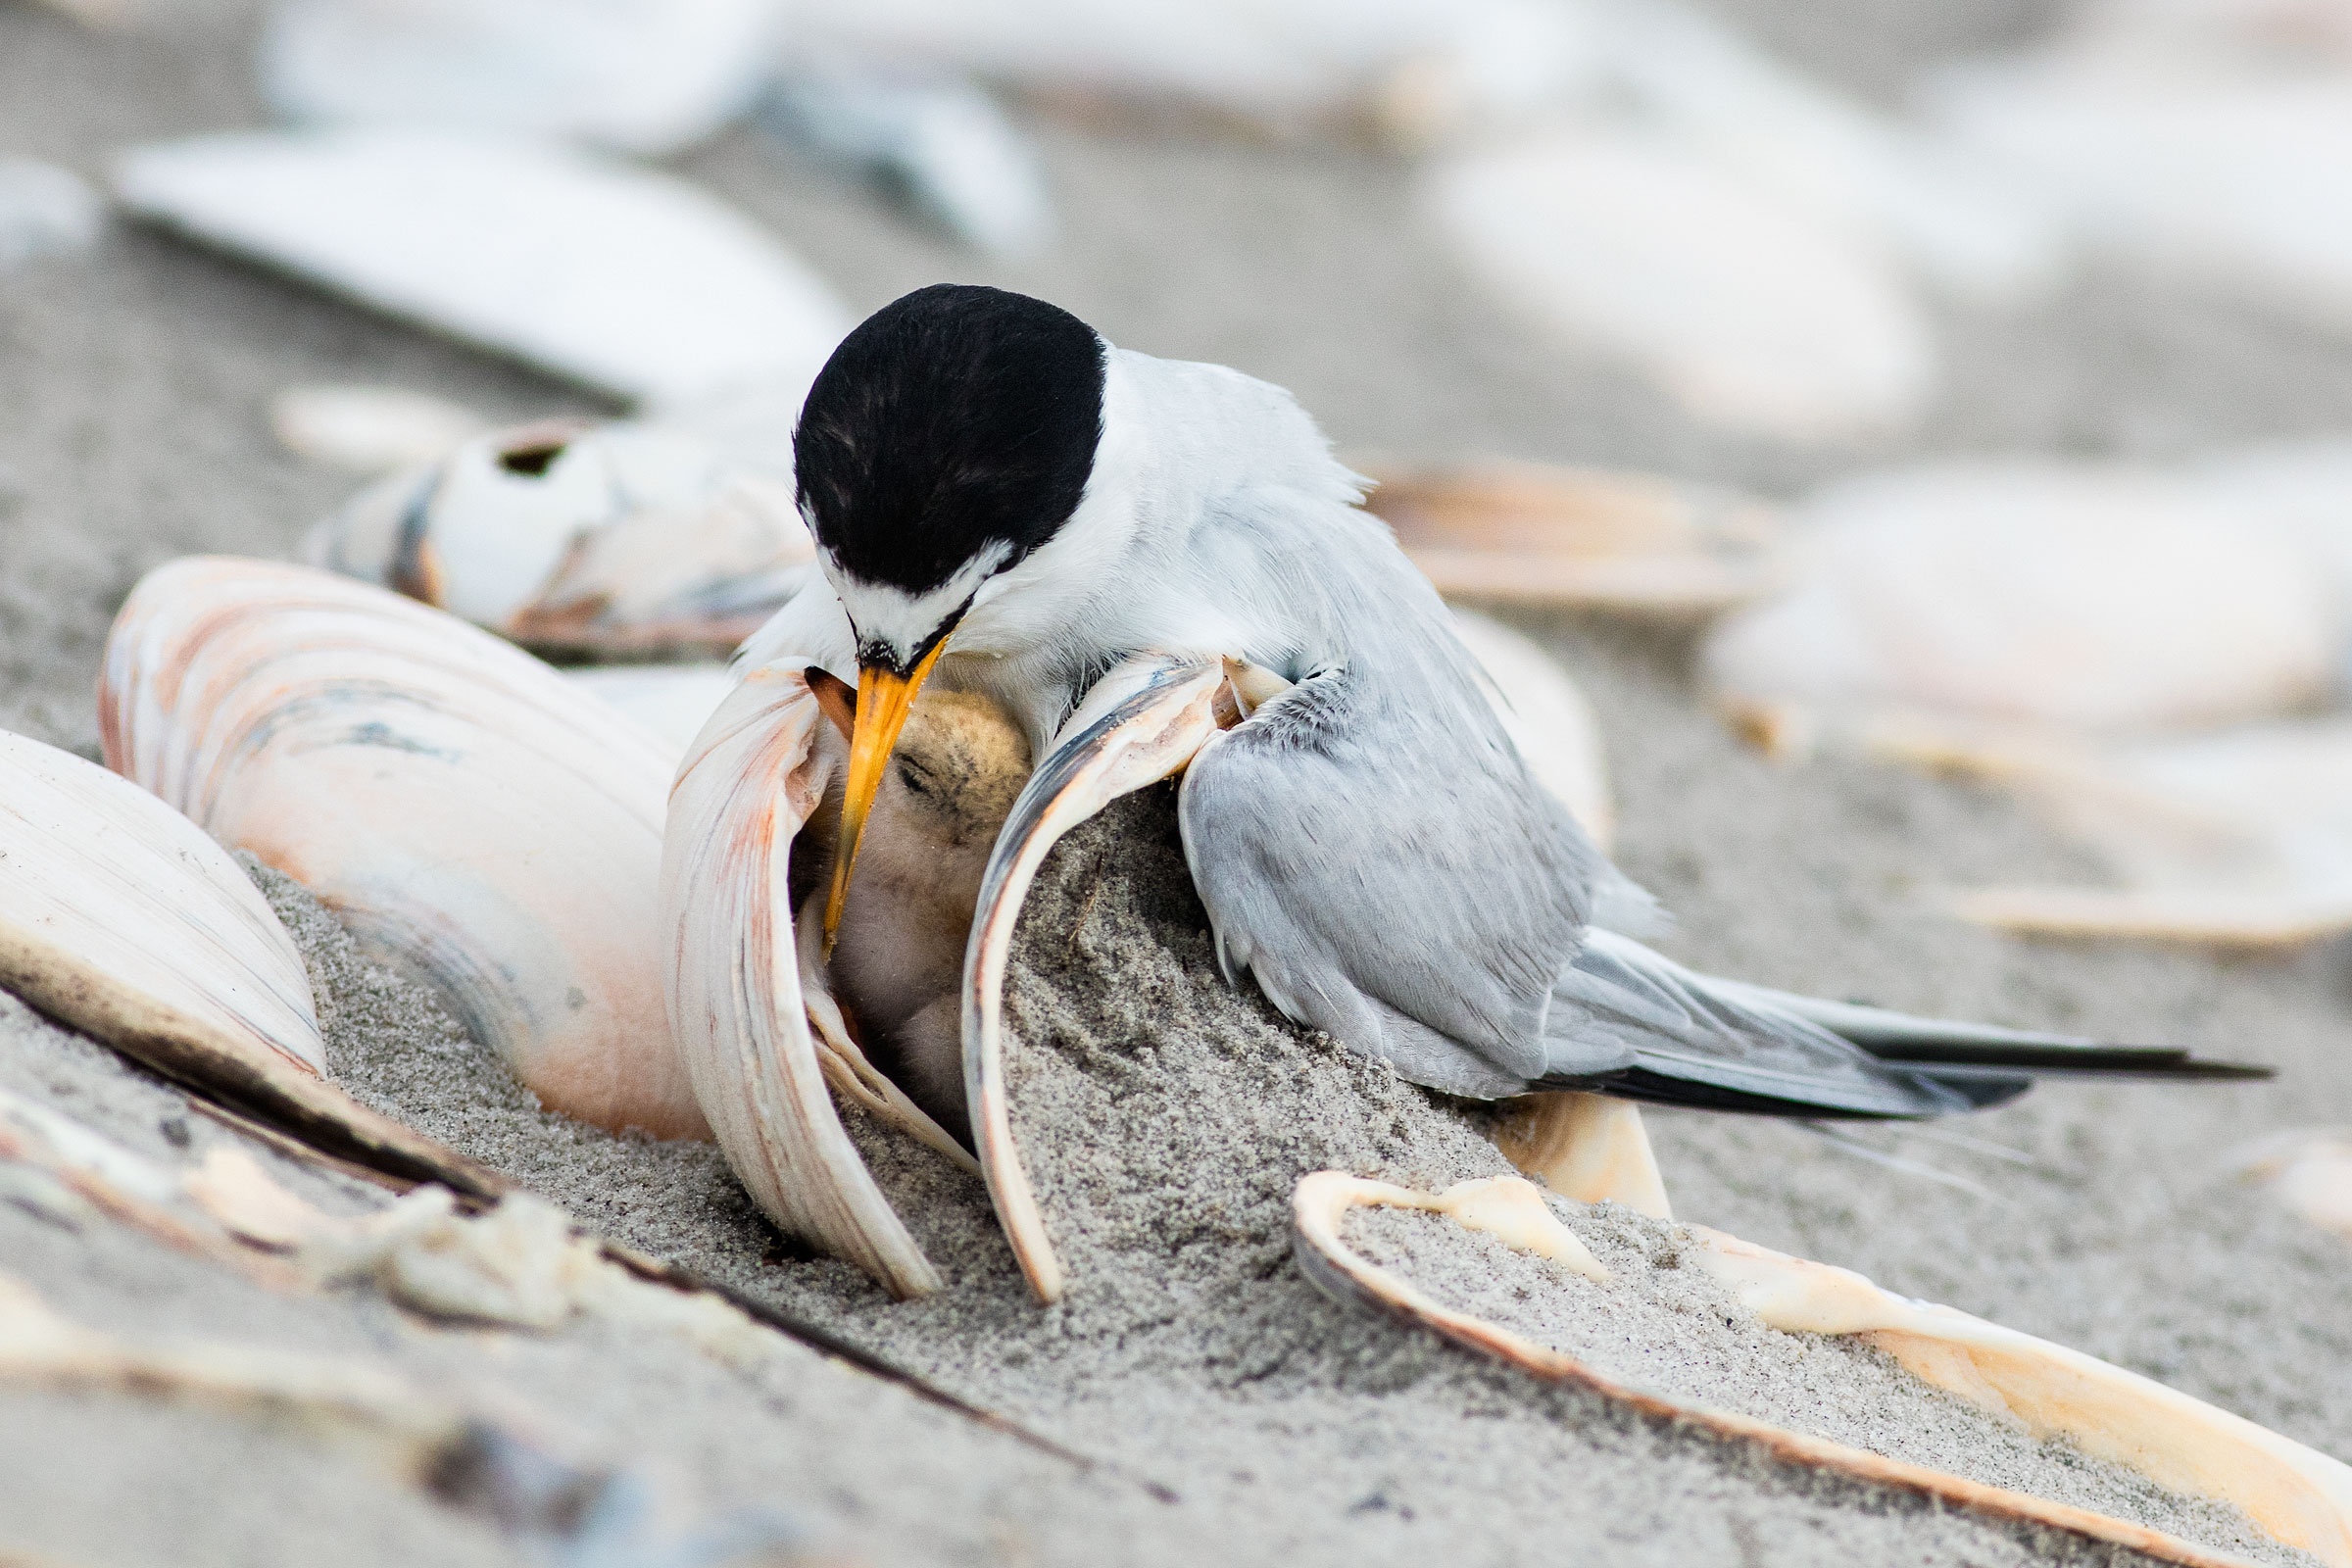 This Least Tern chick, nestled between shells, is unusual; more typically, chicks lay exposed on bare sand. Jim Verhagen